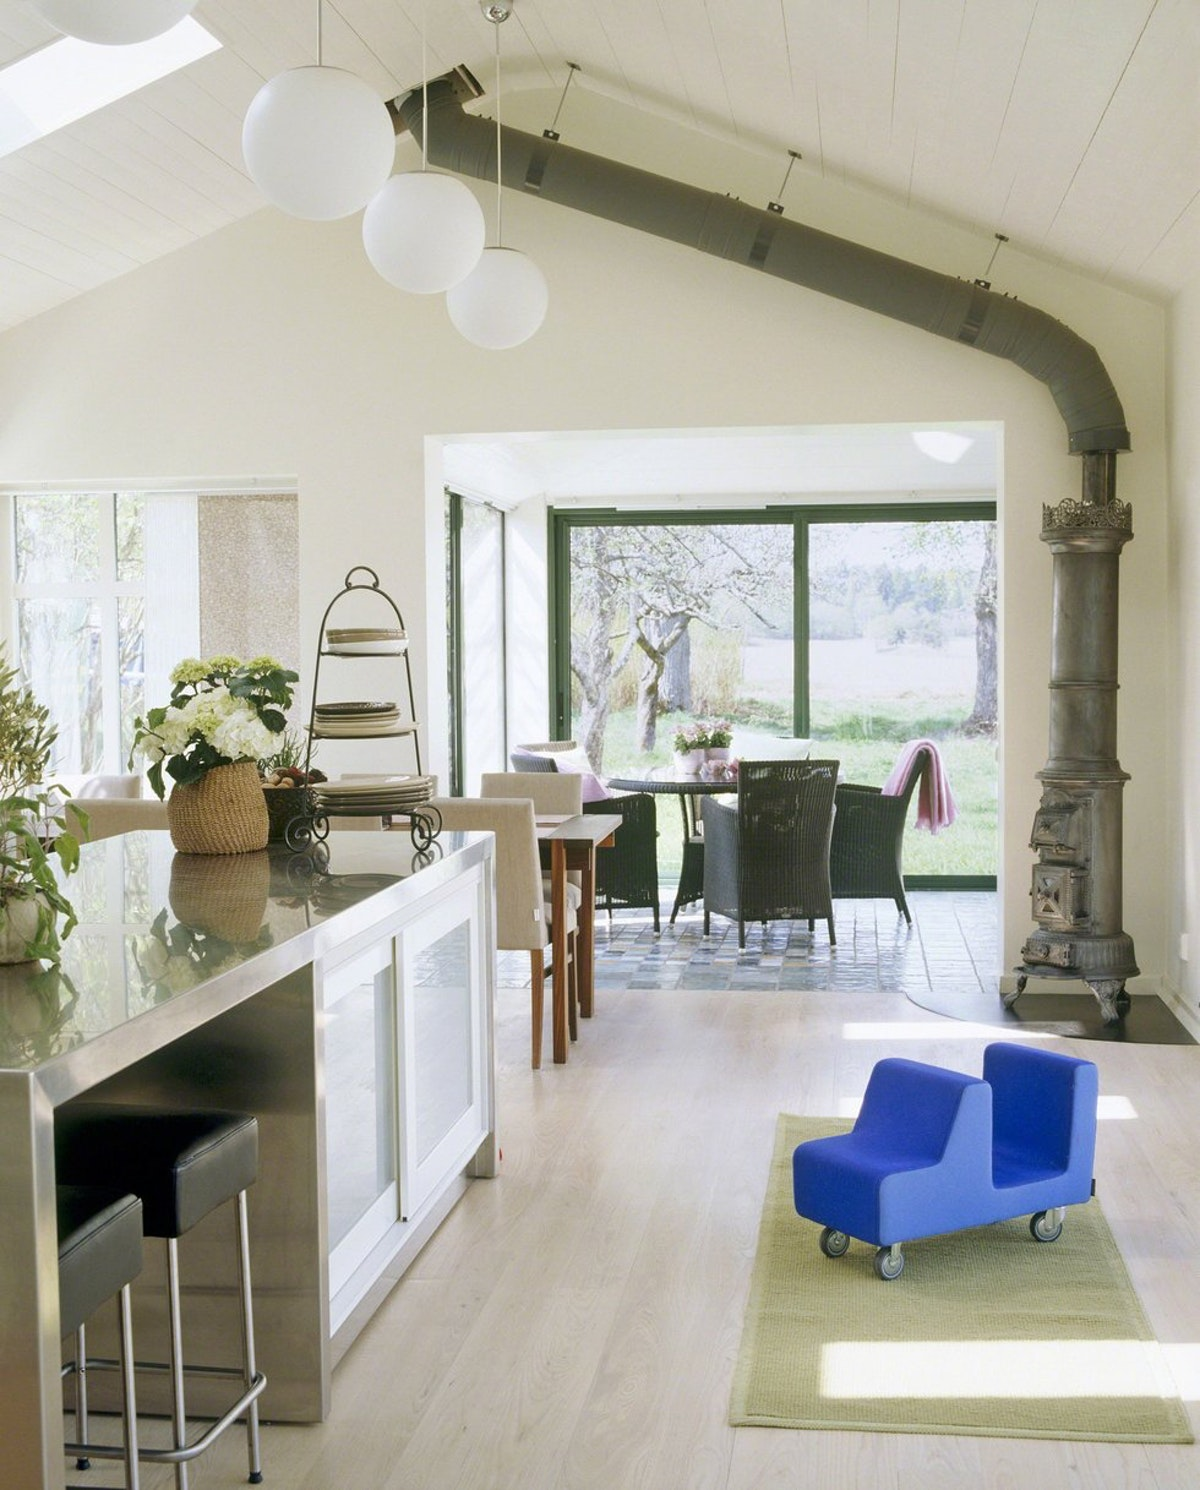 Open Plan Country Kitchen: Never Put Work Before Life; From Midnight Swims To Beach